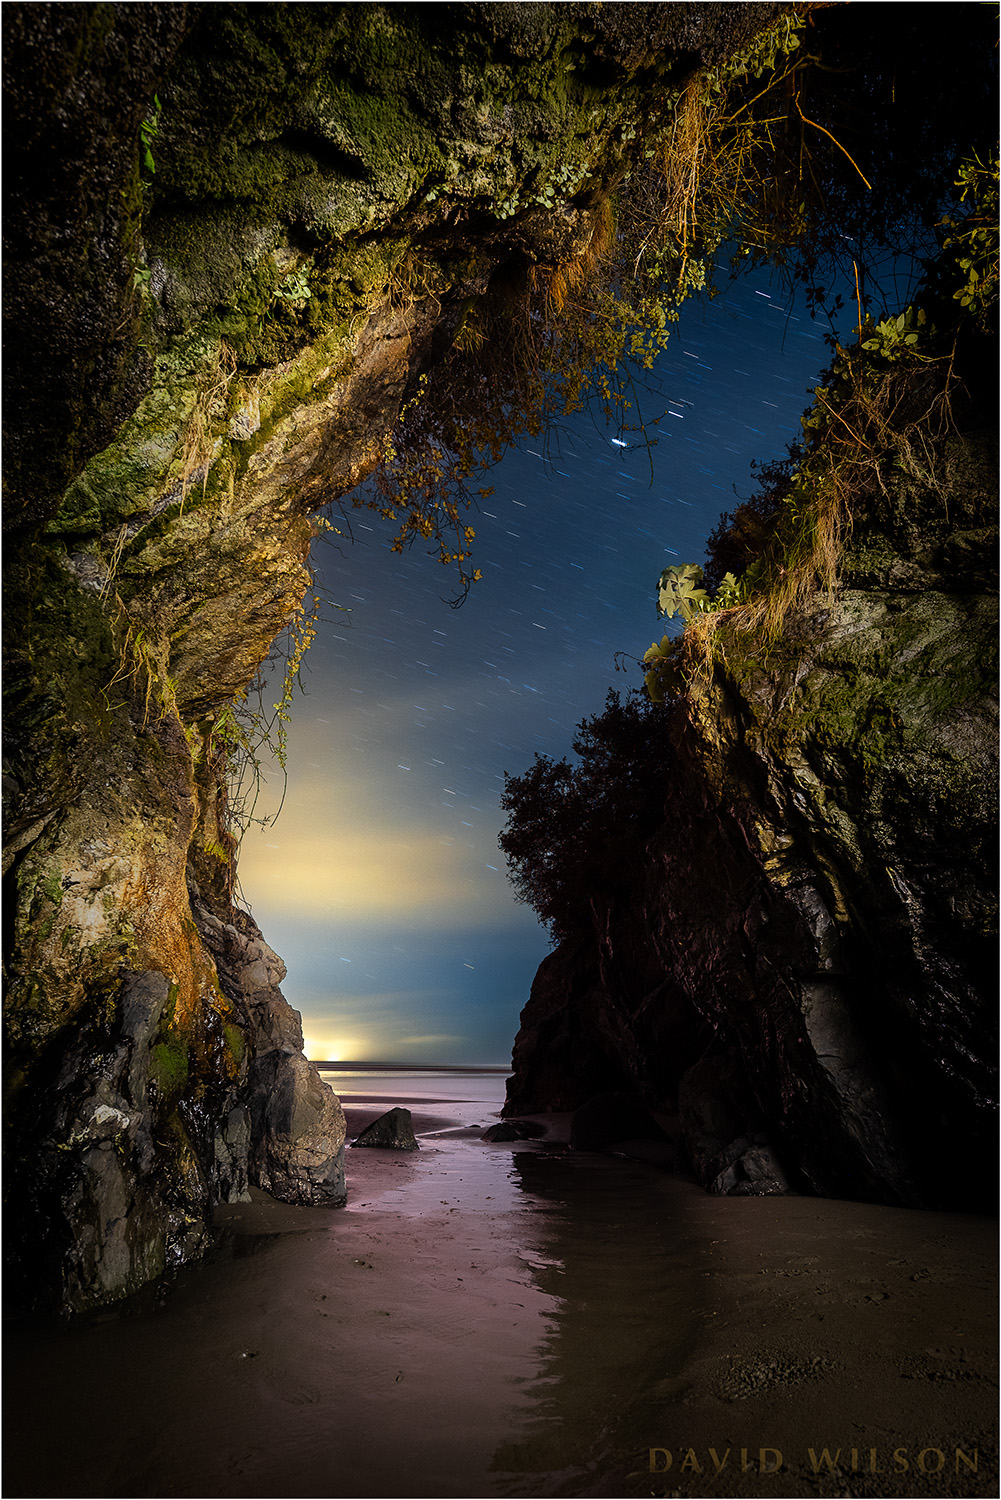 Mysteries of the night reveal themselves in the darkness like the secret caves of the mind -- if one knows where to look, how to see… This is a single exposure of an actual beach cave on the rugged coast of Humboldt County, California. April 9, 2019.